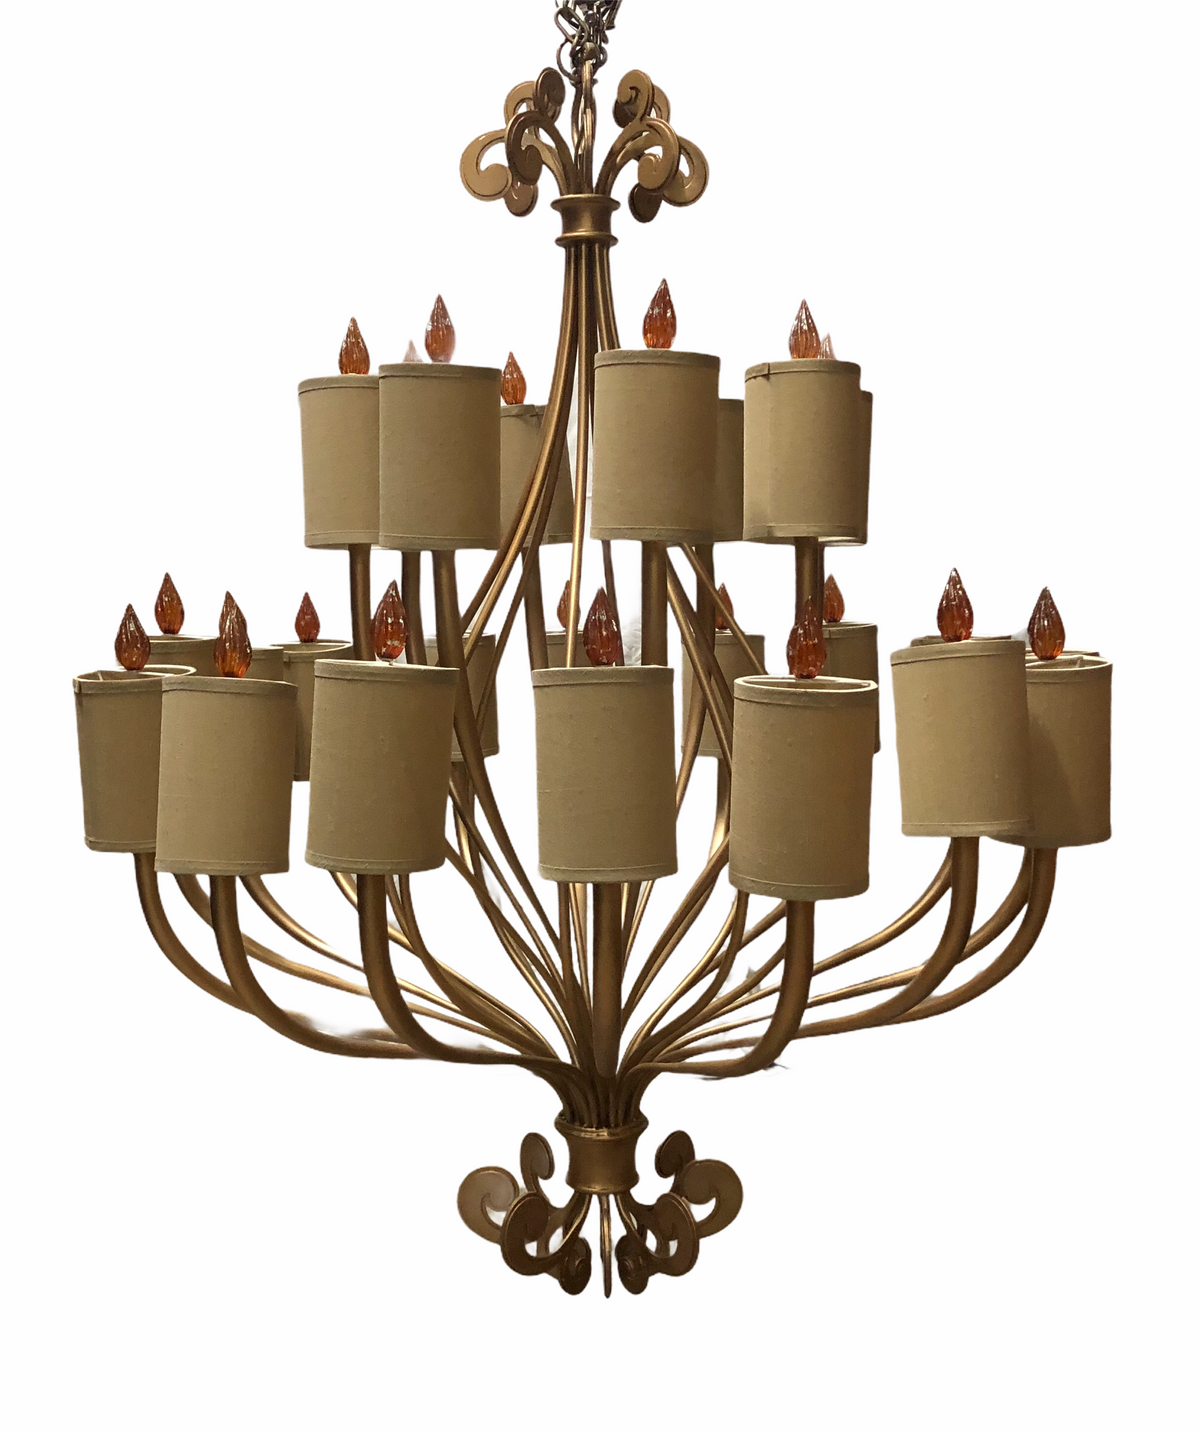 Modern gold chandelier with shades and flame finials